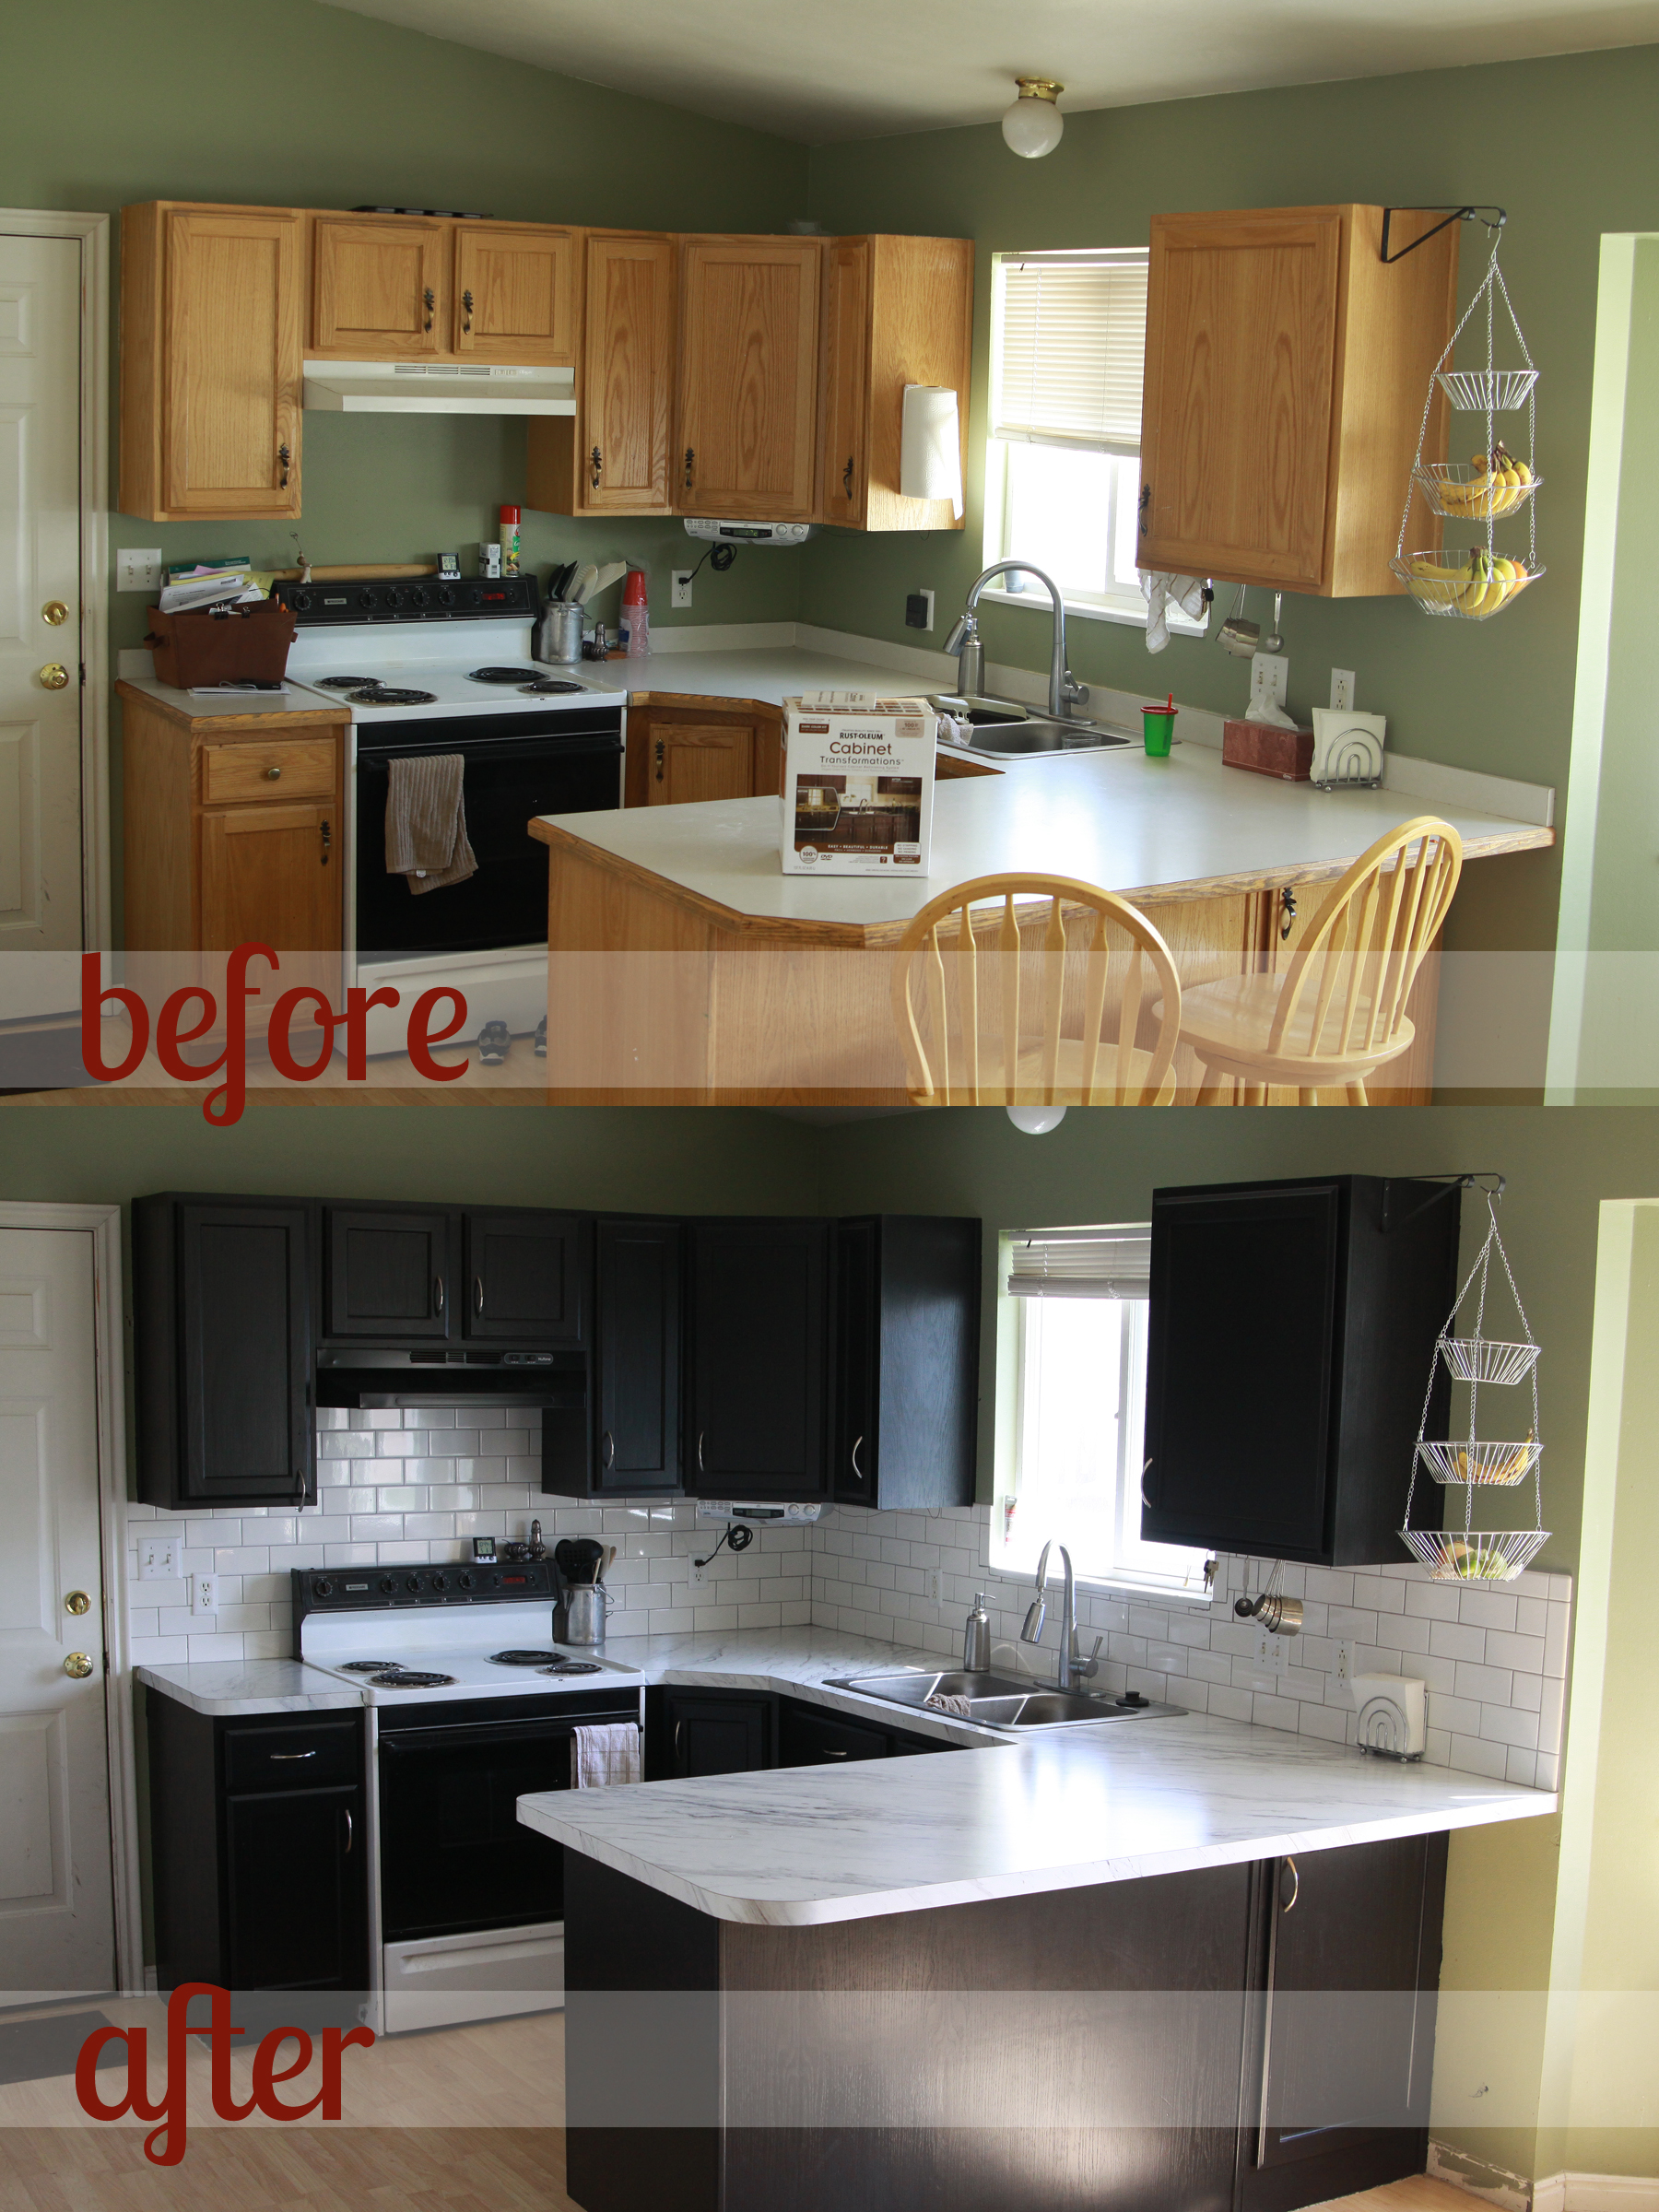 kitchen transformation part 2 and review of rustoleum cabine kitchen cabinet reviews kitchen transformation part 2 and review of Rustoleum Cabinet Transformations